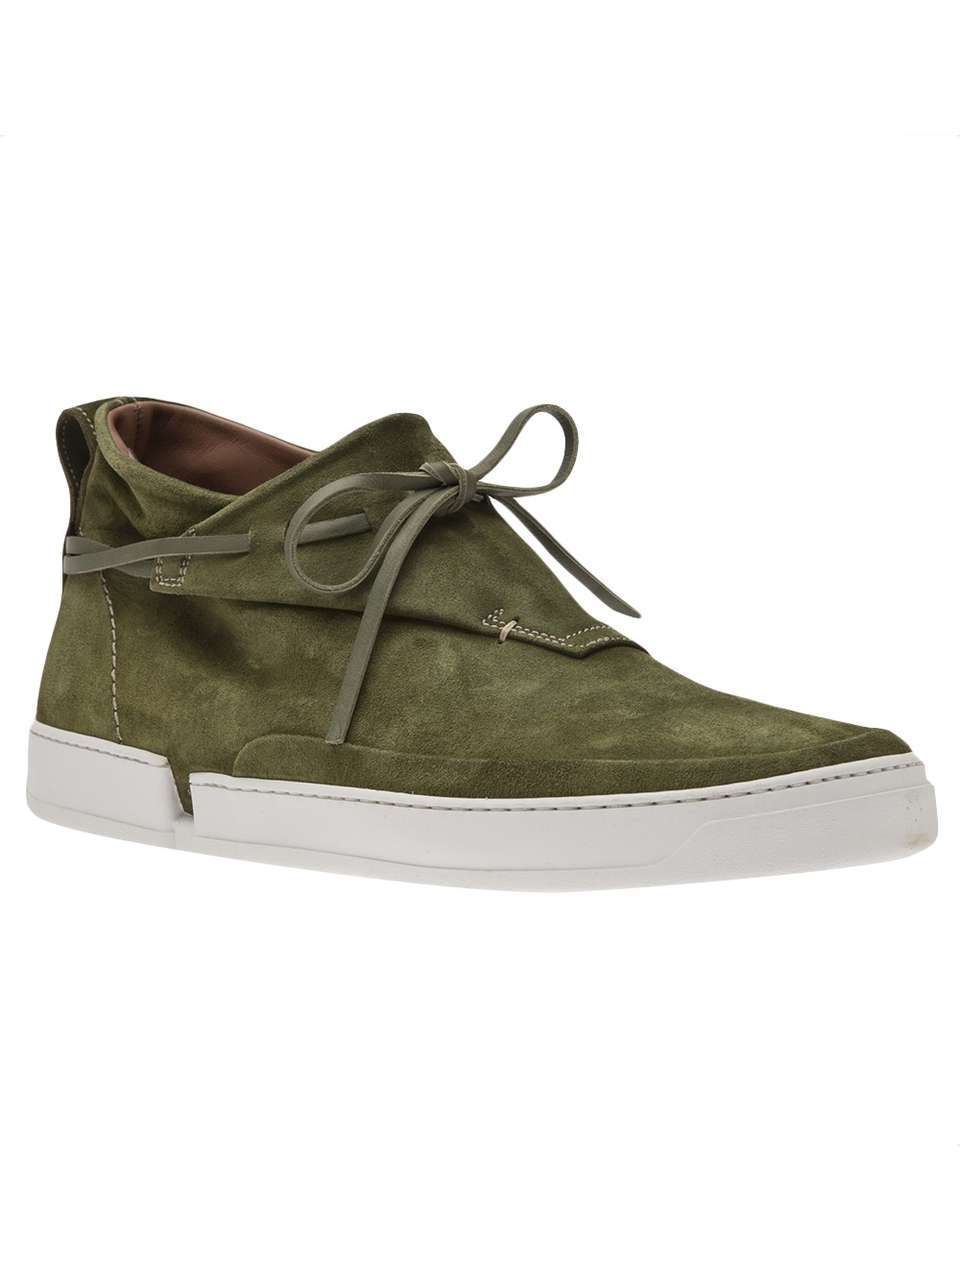 new product da395 a6a75 Love the CASBIA sneaker on Wantering  Sneaks and Kicks  mens green  sneaker  mens